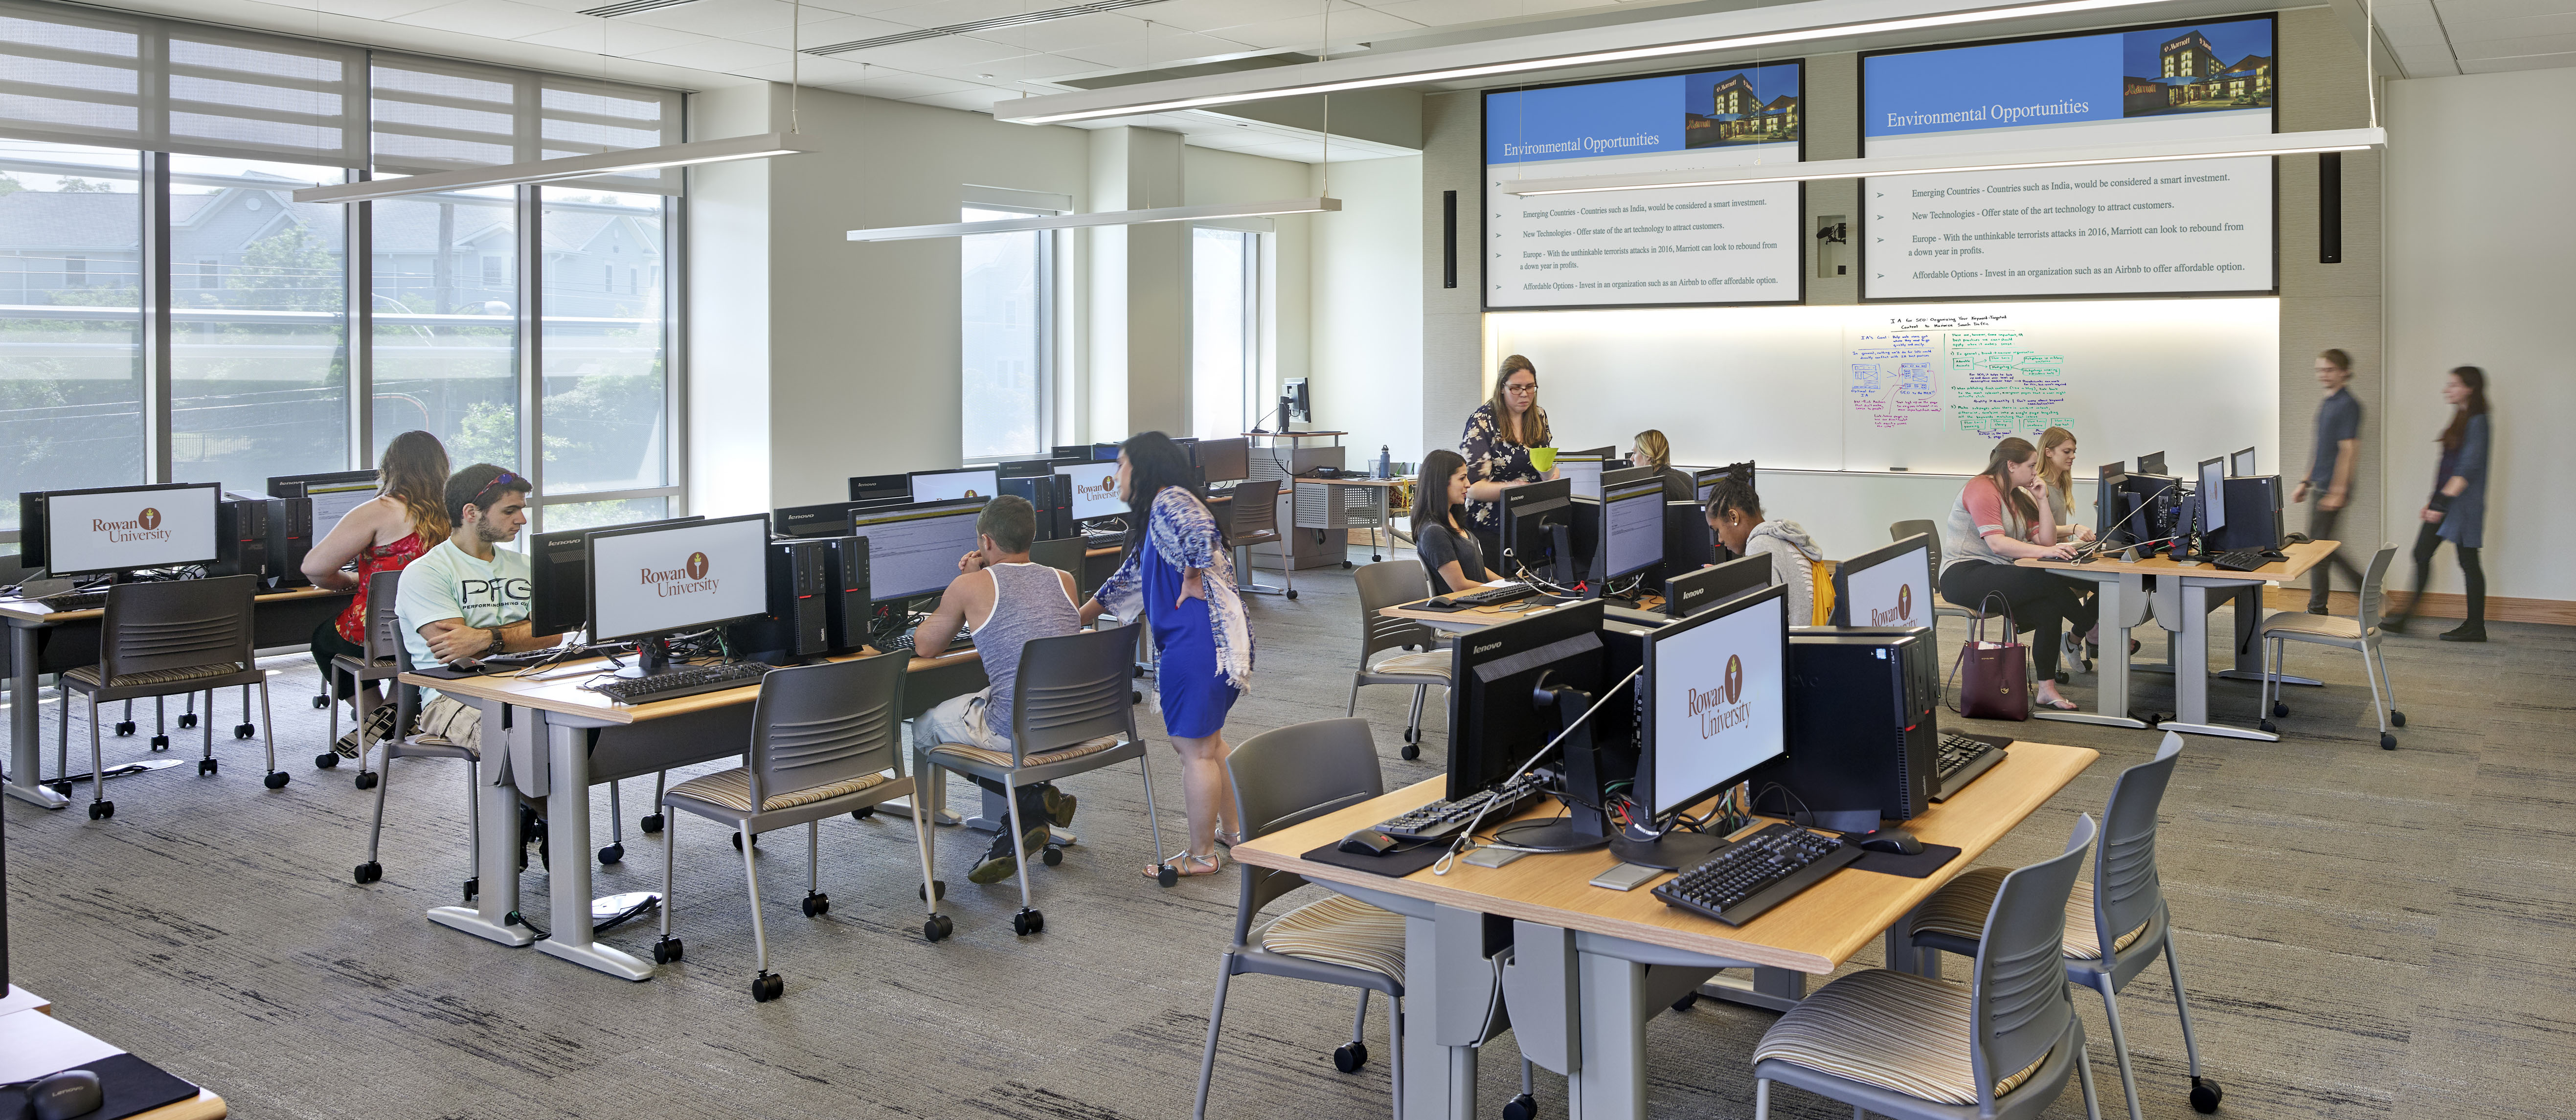 image of students and faculty in a technology-enhanced classroom at Rowan University